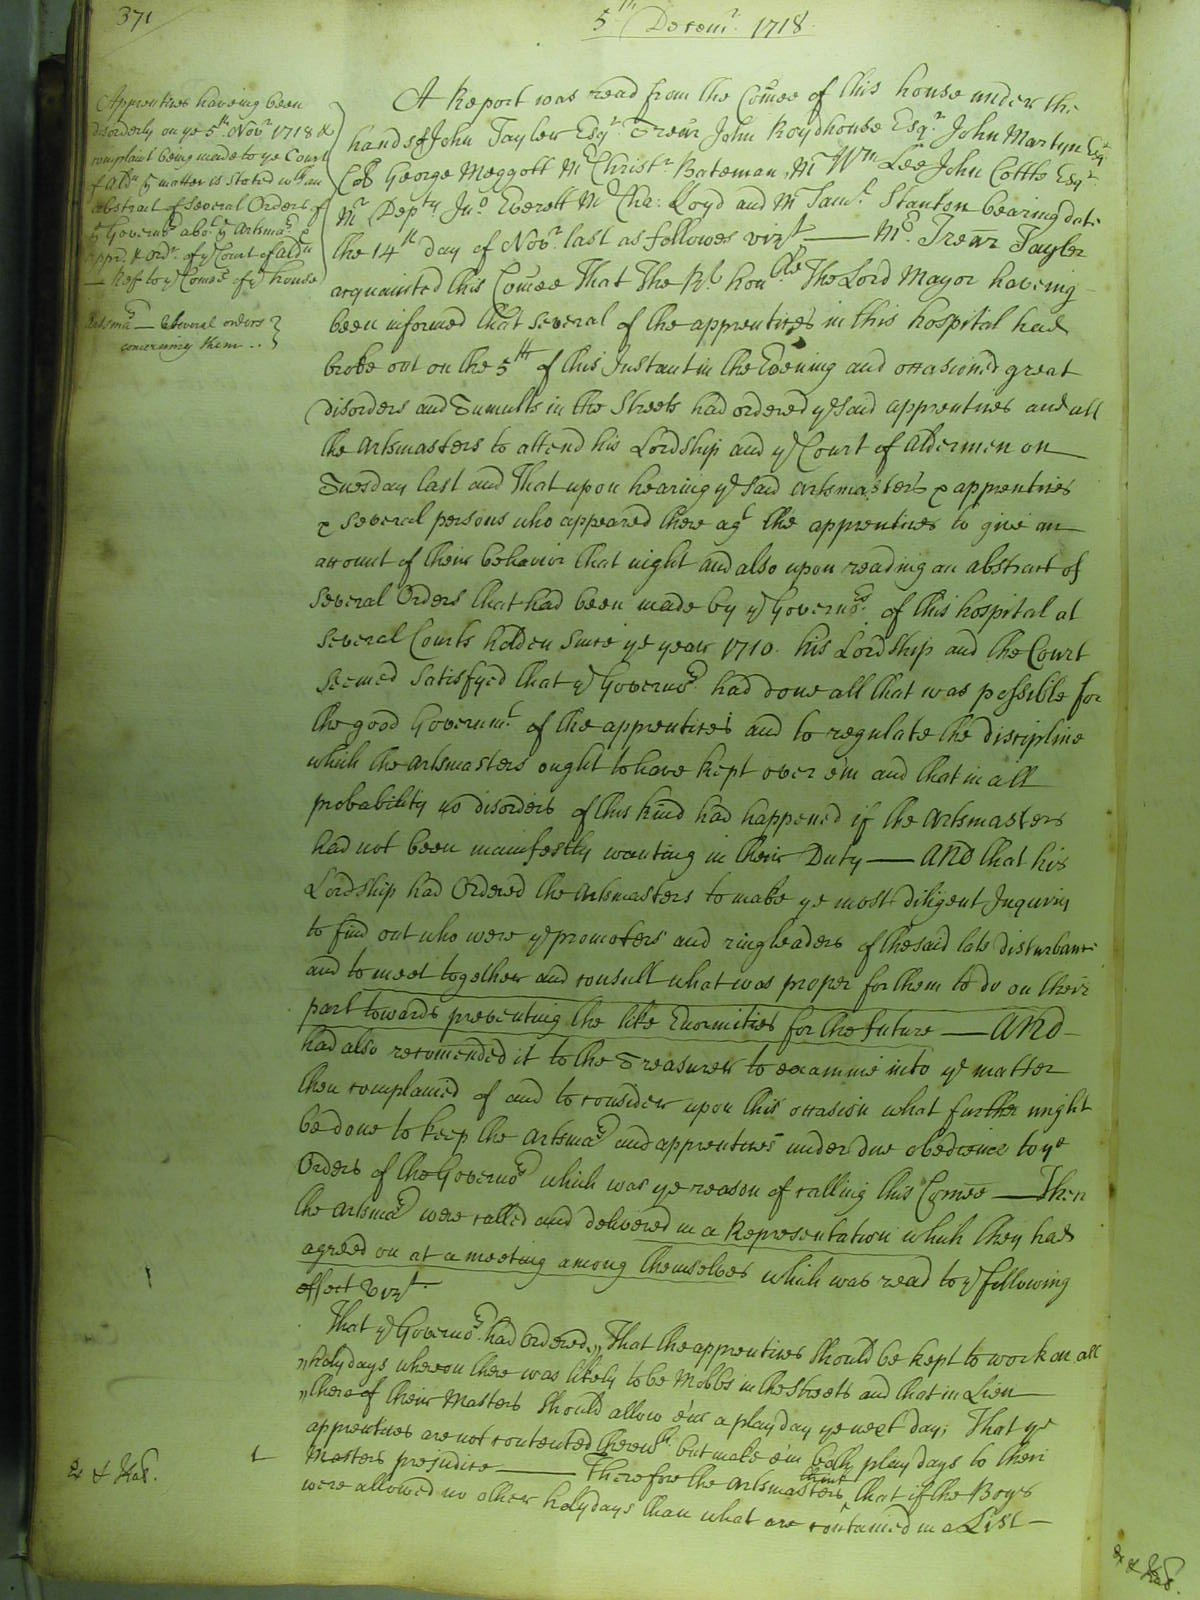 A detailed report of the role of the Bridewell boys in the riots of 5 November 1718